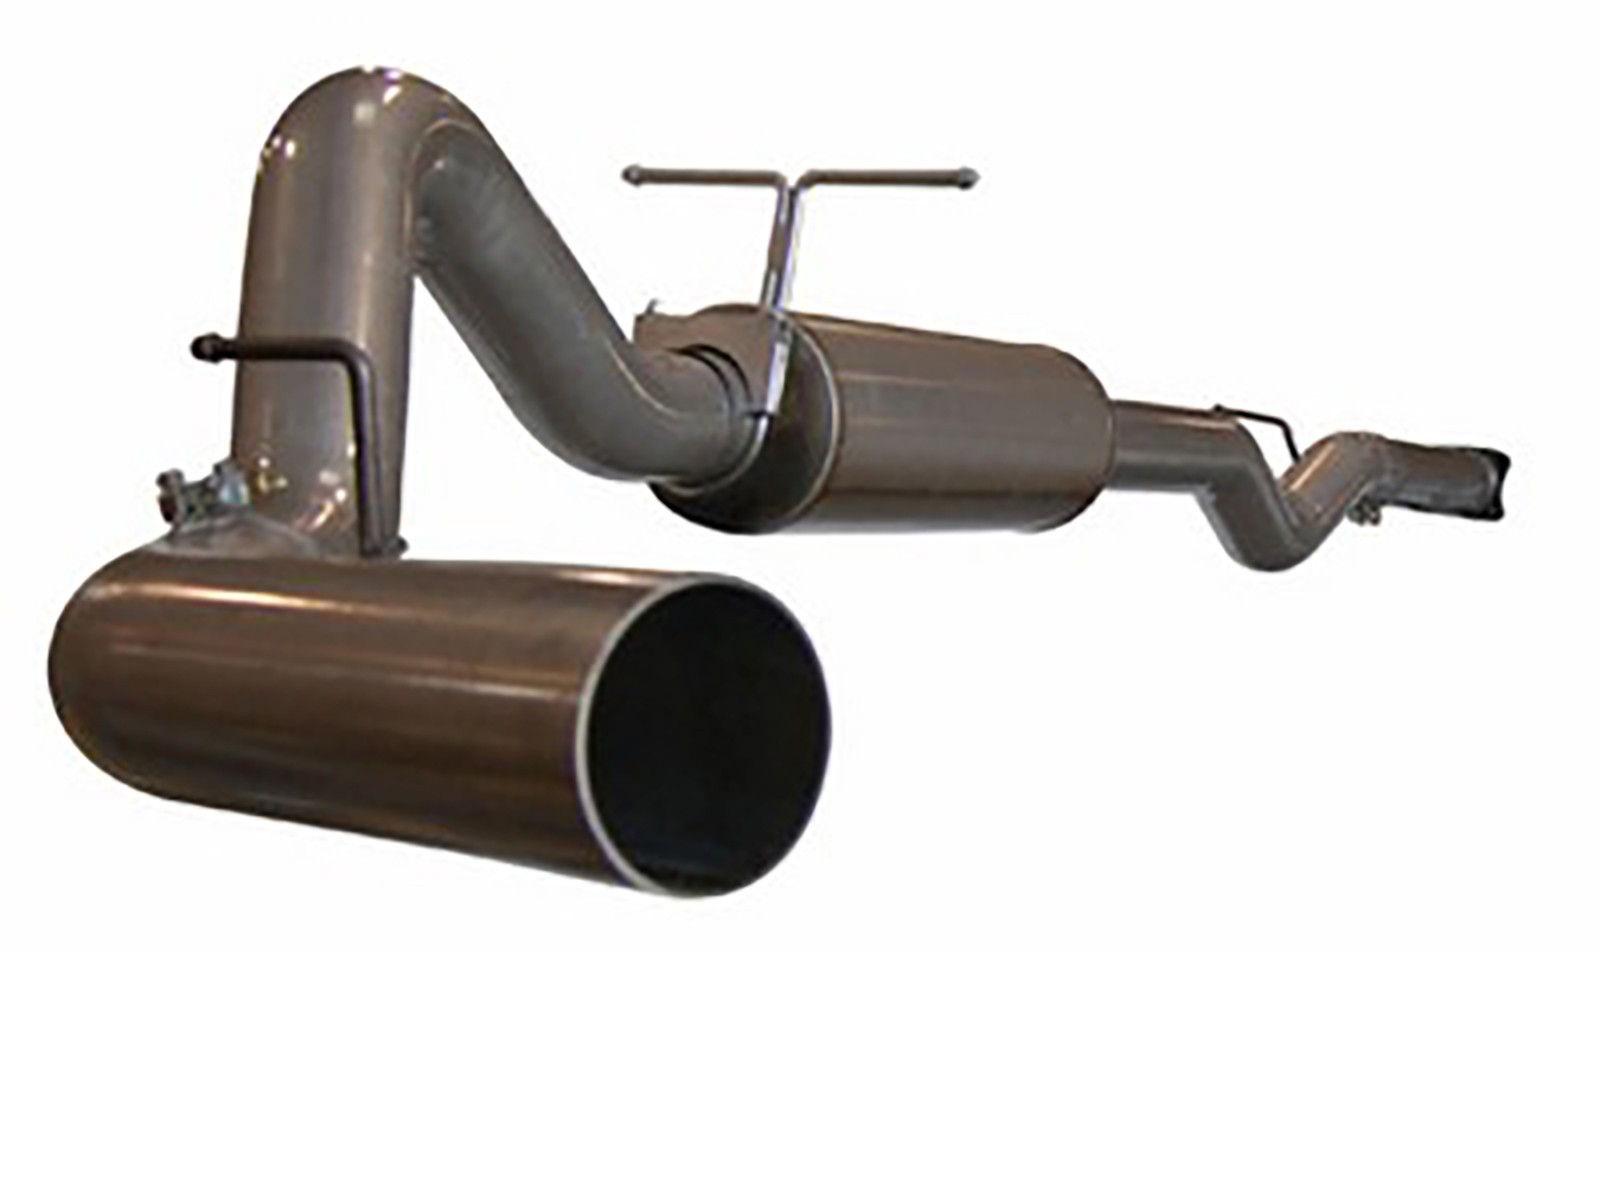 aFe Power aFe LARGE Bore HD Exhaust Cat-Back SS-409 (01-05 Chevrolet/GMC 2500 HD/3500 HD | 6.6L V8)